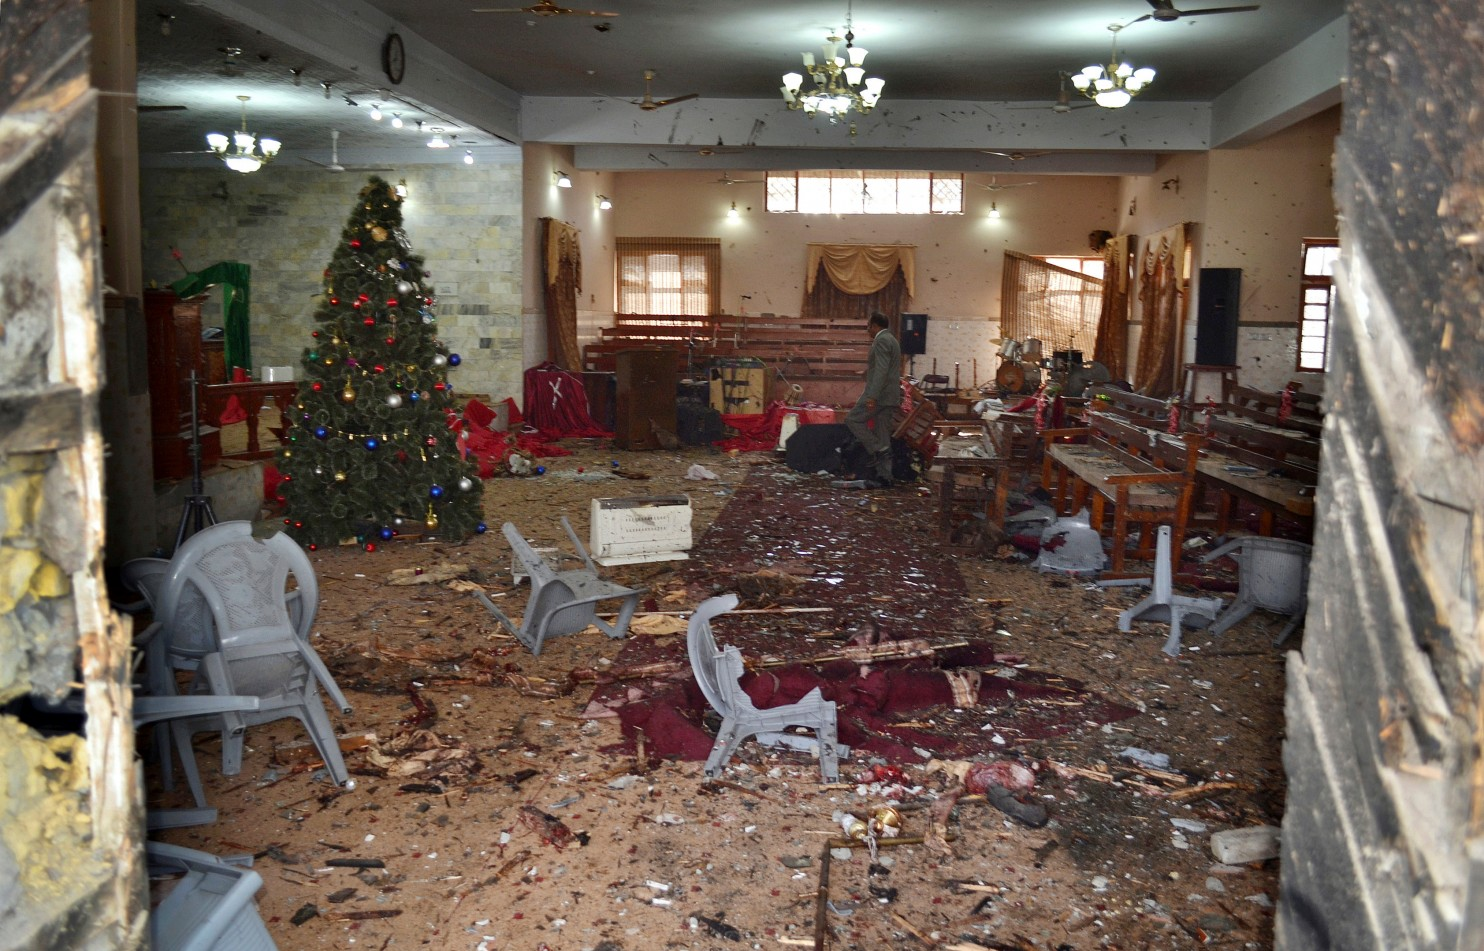 Suicide bombers attack church in Pakistan, killing 8